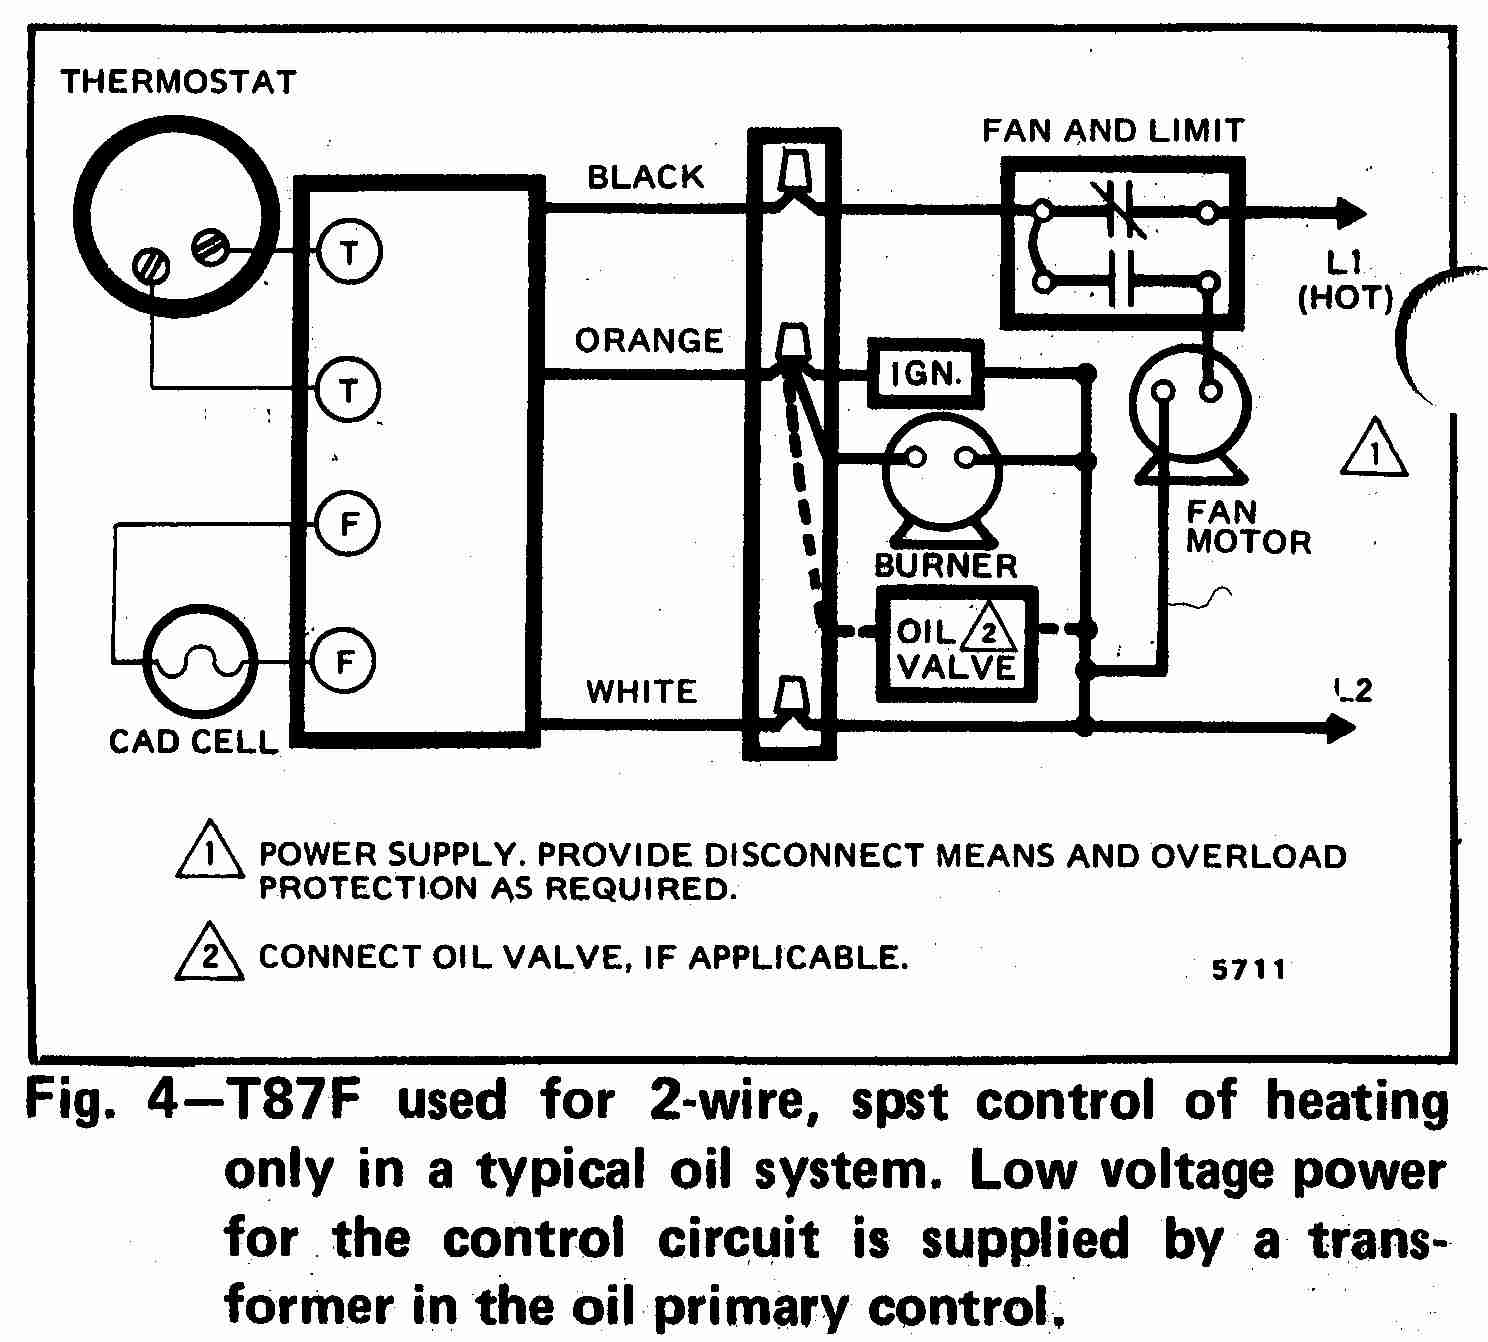 TT_T87F_0002_2W_DJF room thermostat wiring diagrams for hvac systems Basic Outlet Wiring Diagrams at readyjetset.co